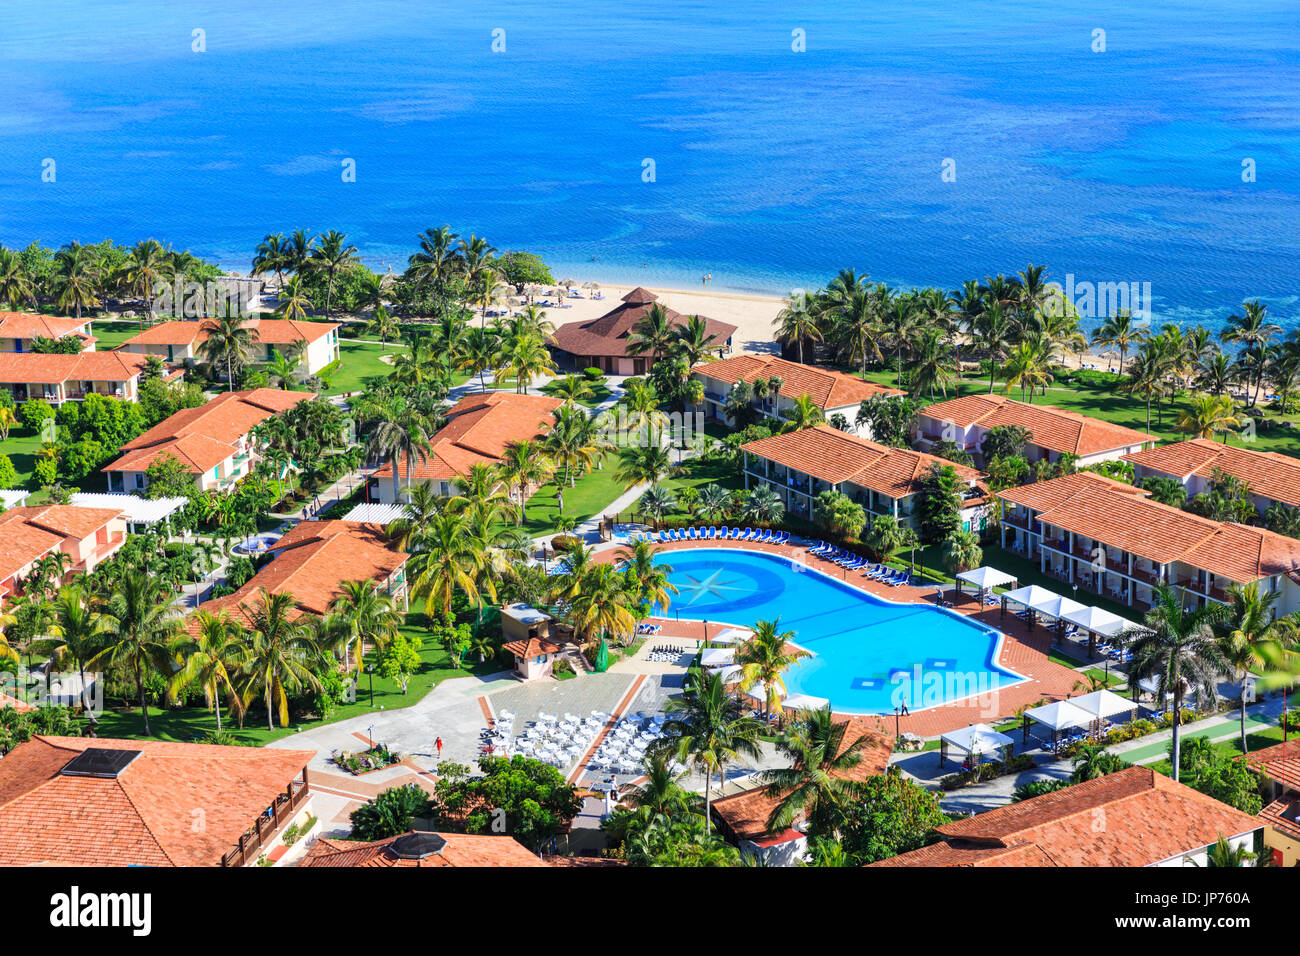 Memories Jibacoa Hotel with pool and beach from above, Cuba Stock Photo